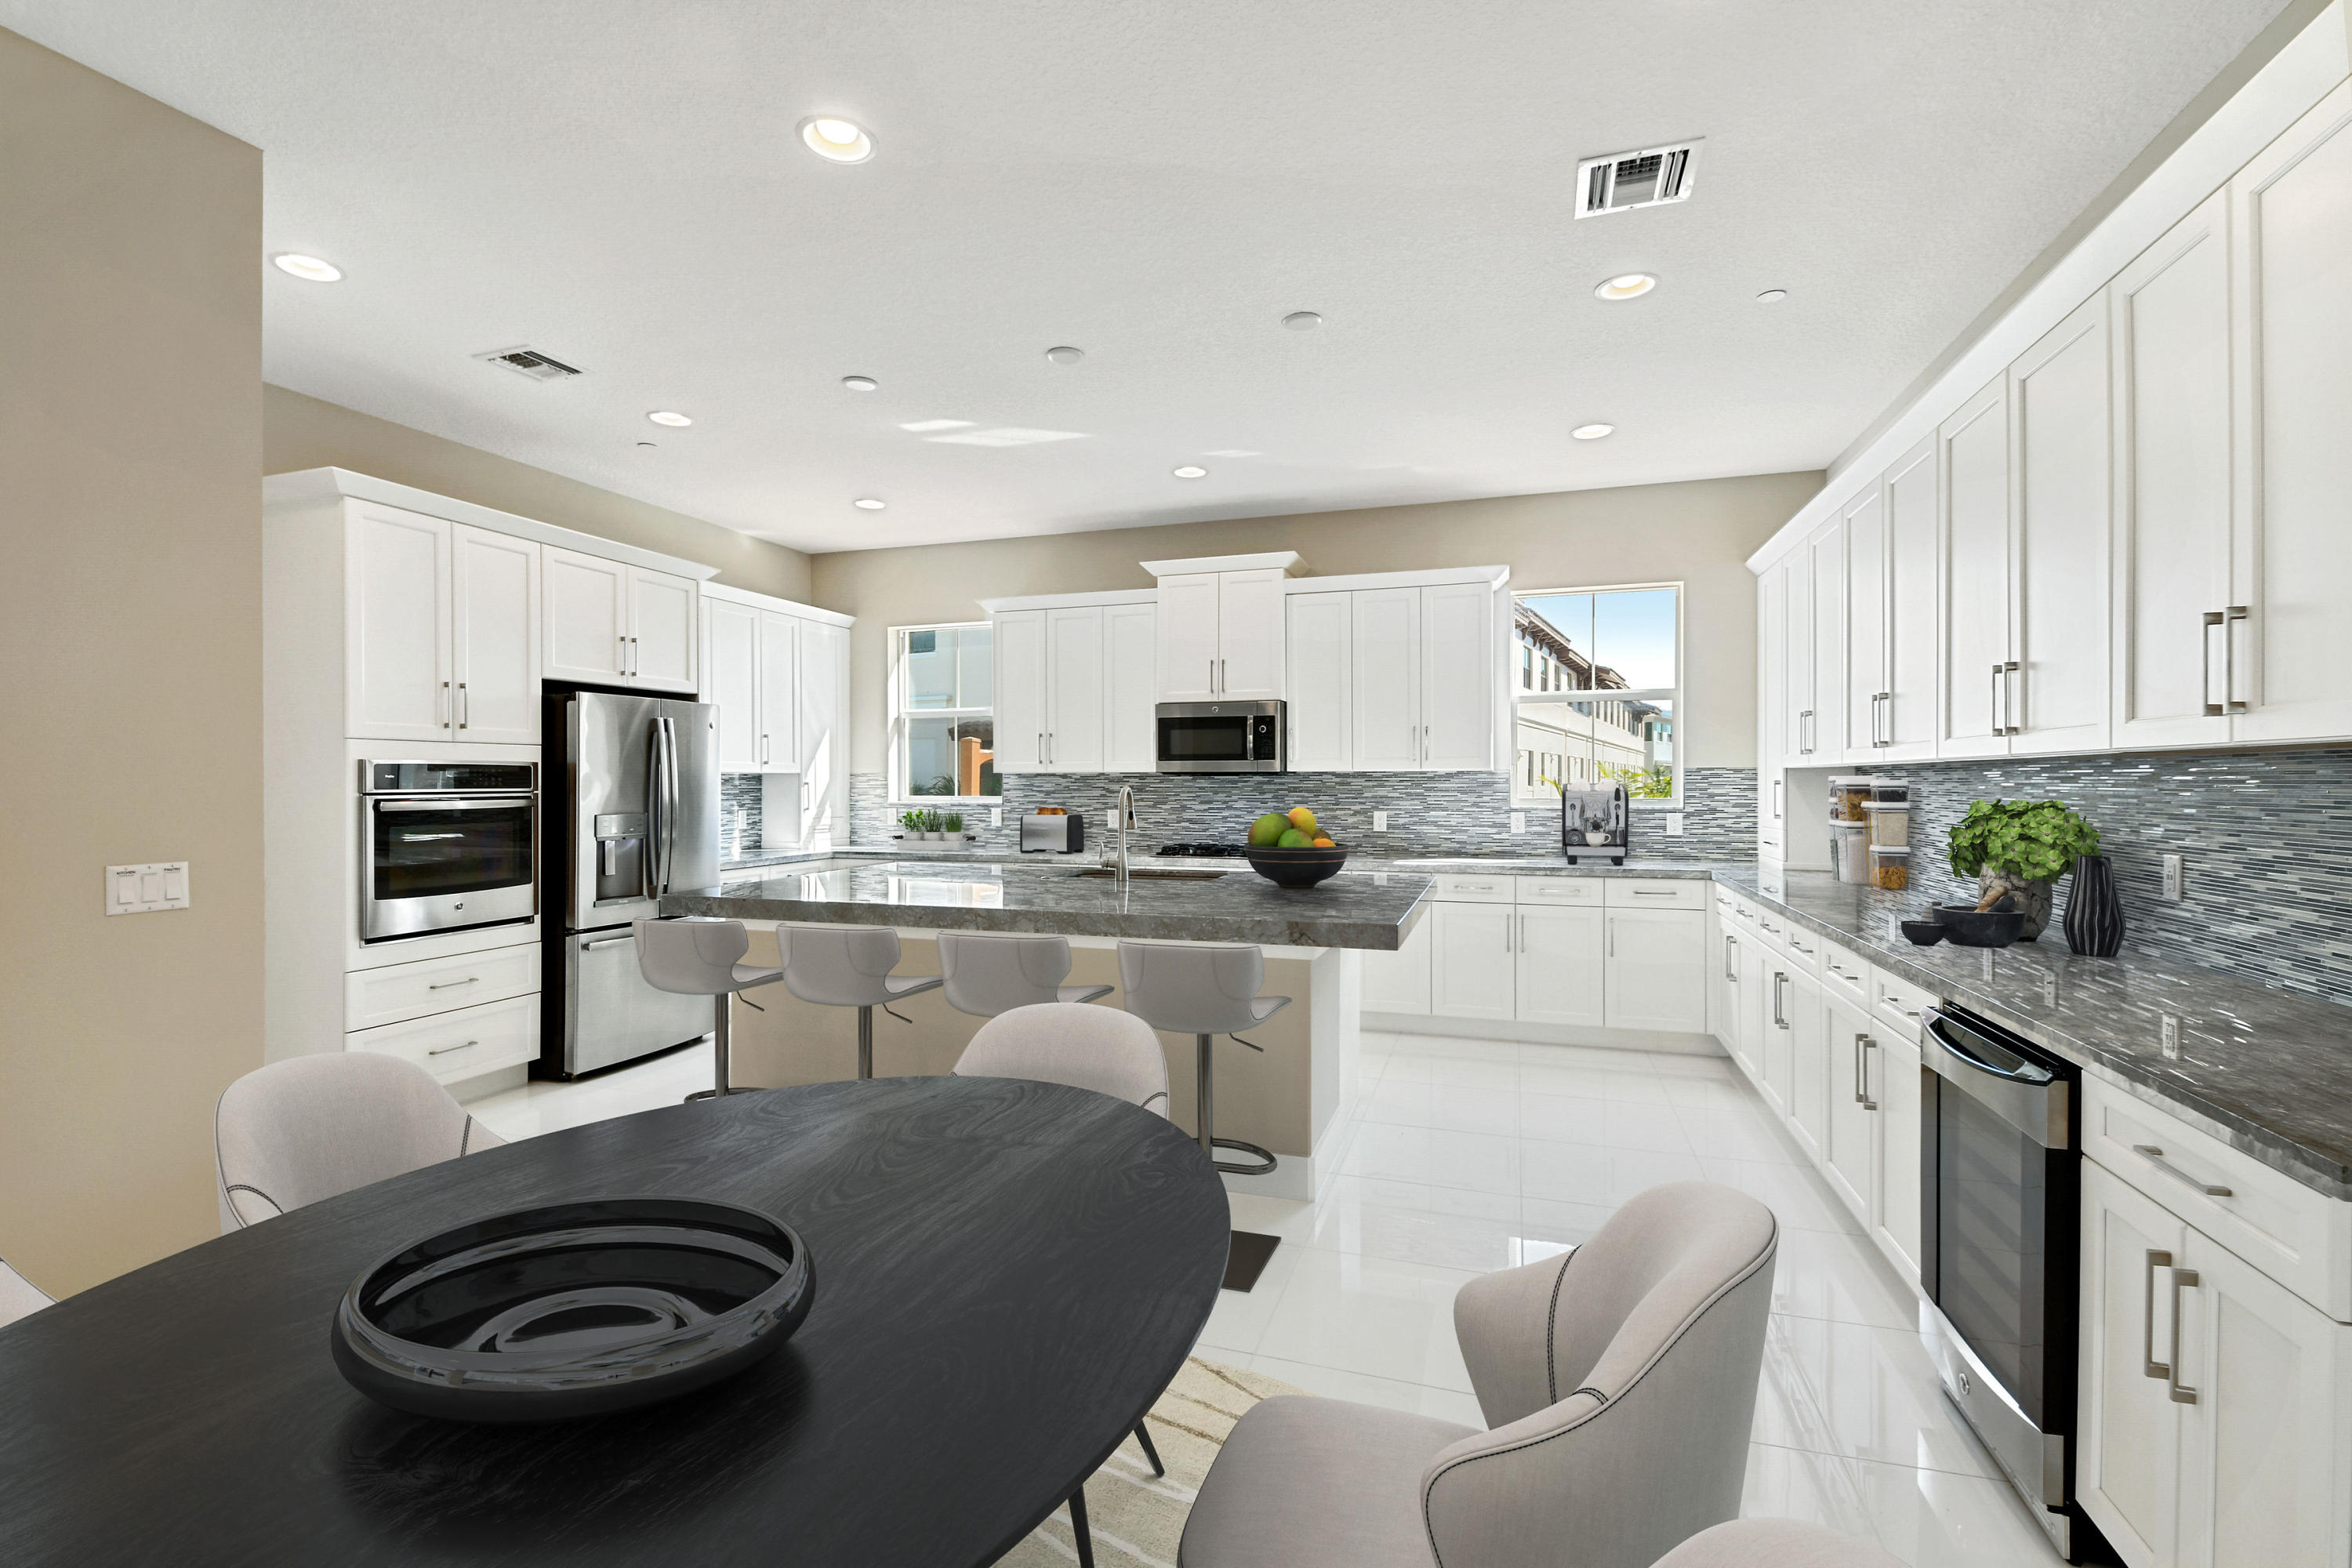 New Home for sale at 7110 Edison Place in Palm Beach Gardens